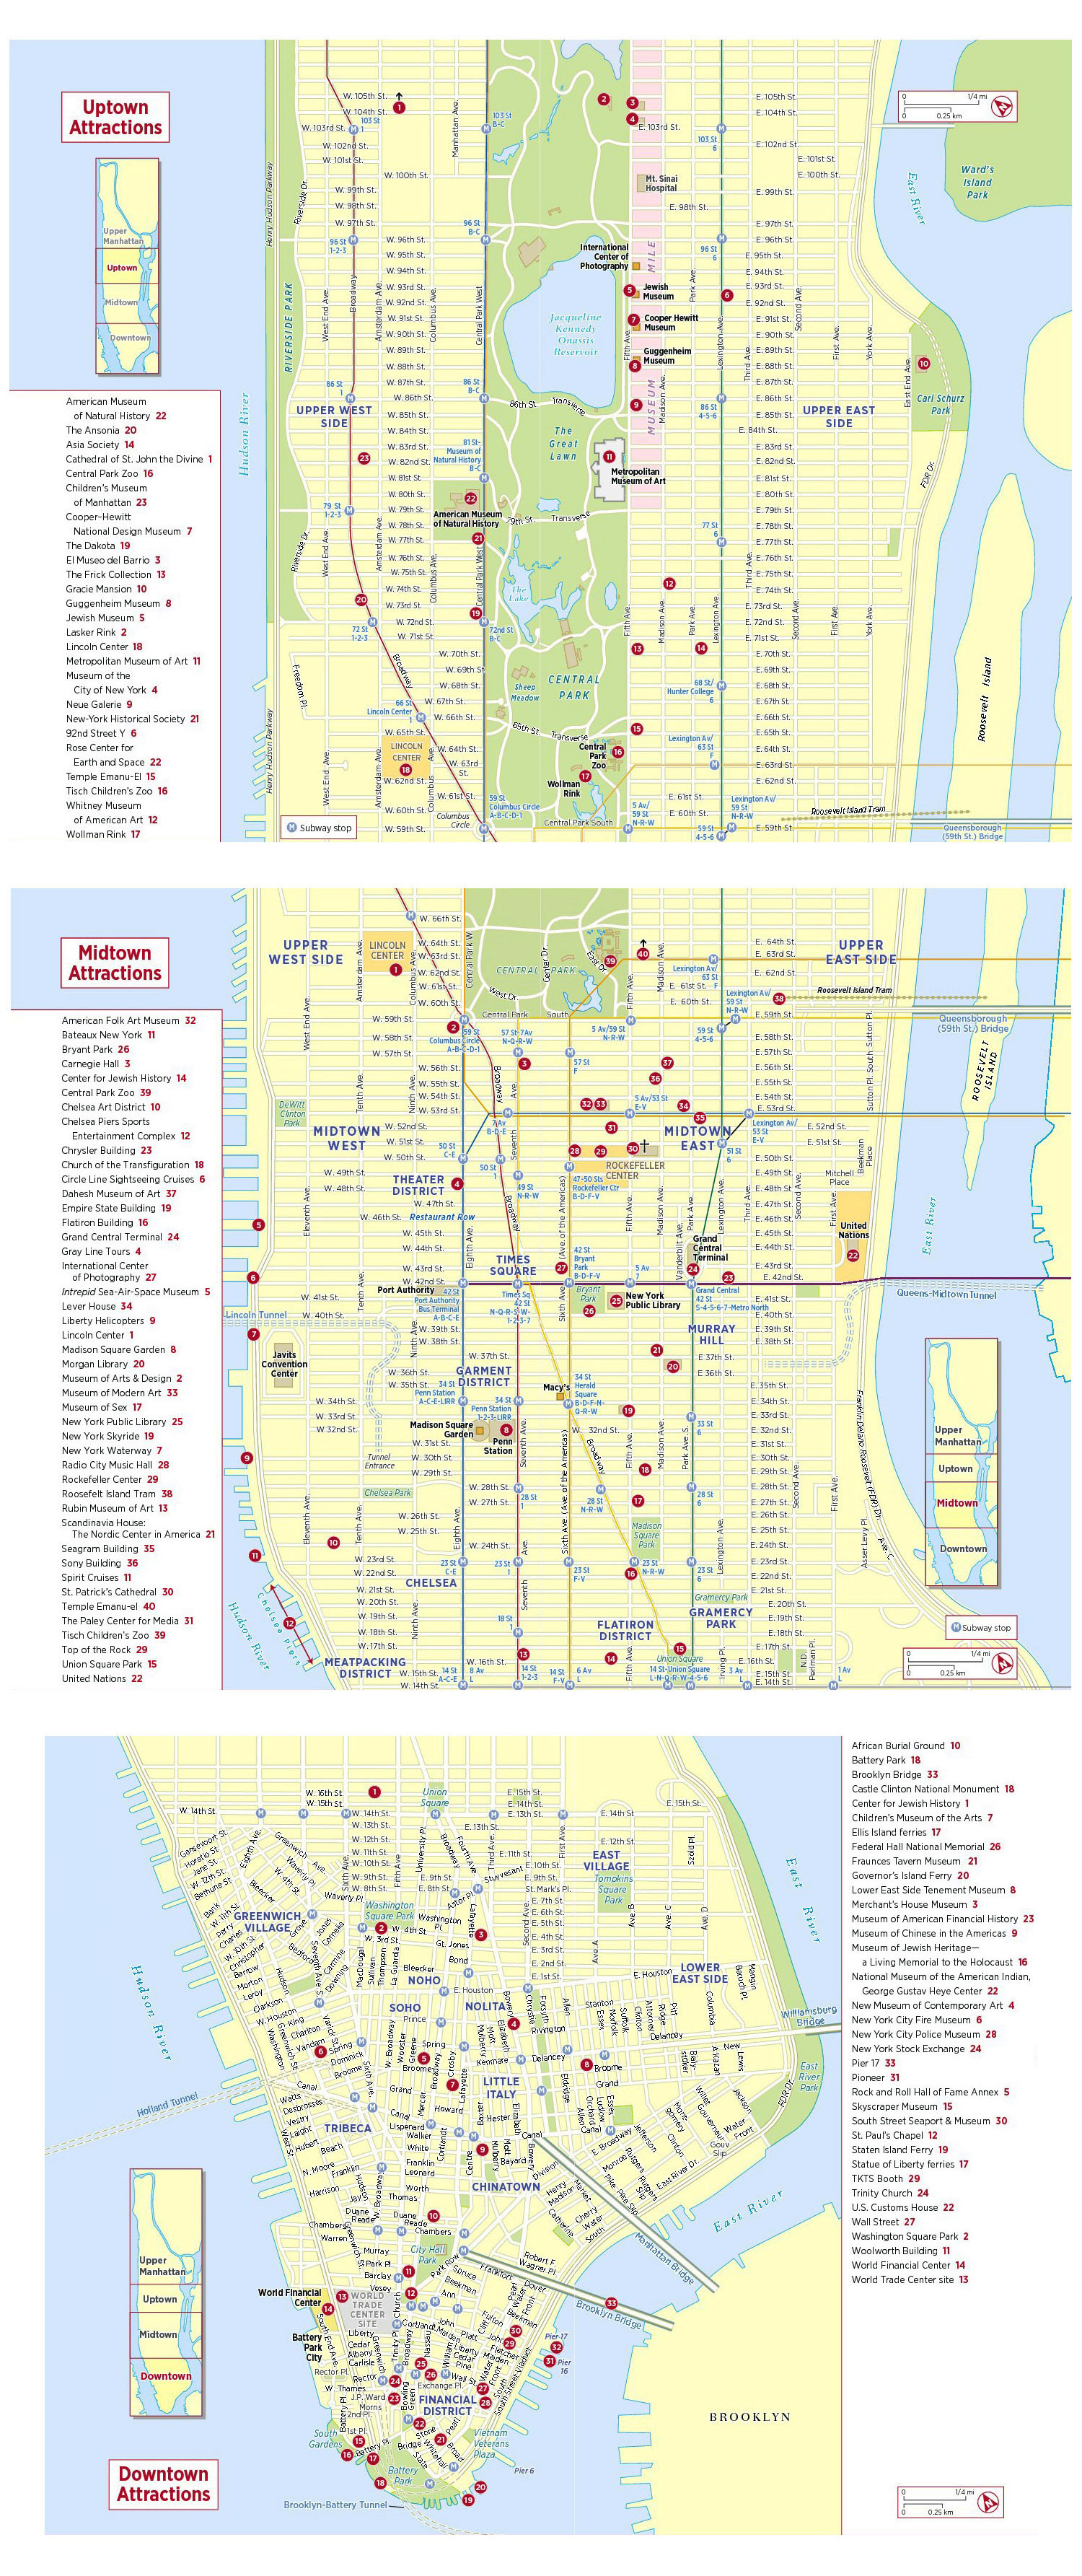 Large tourist attractions map of New York city New York city NY – Tourist Attractions Map In New York City